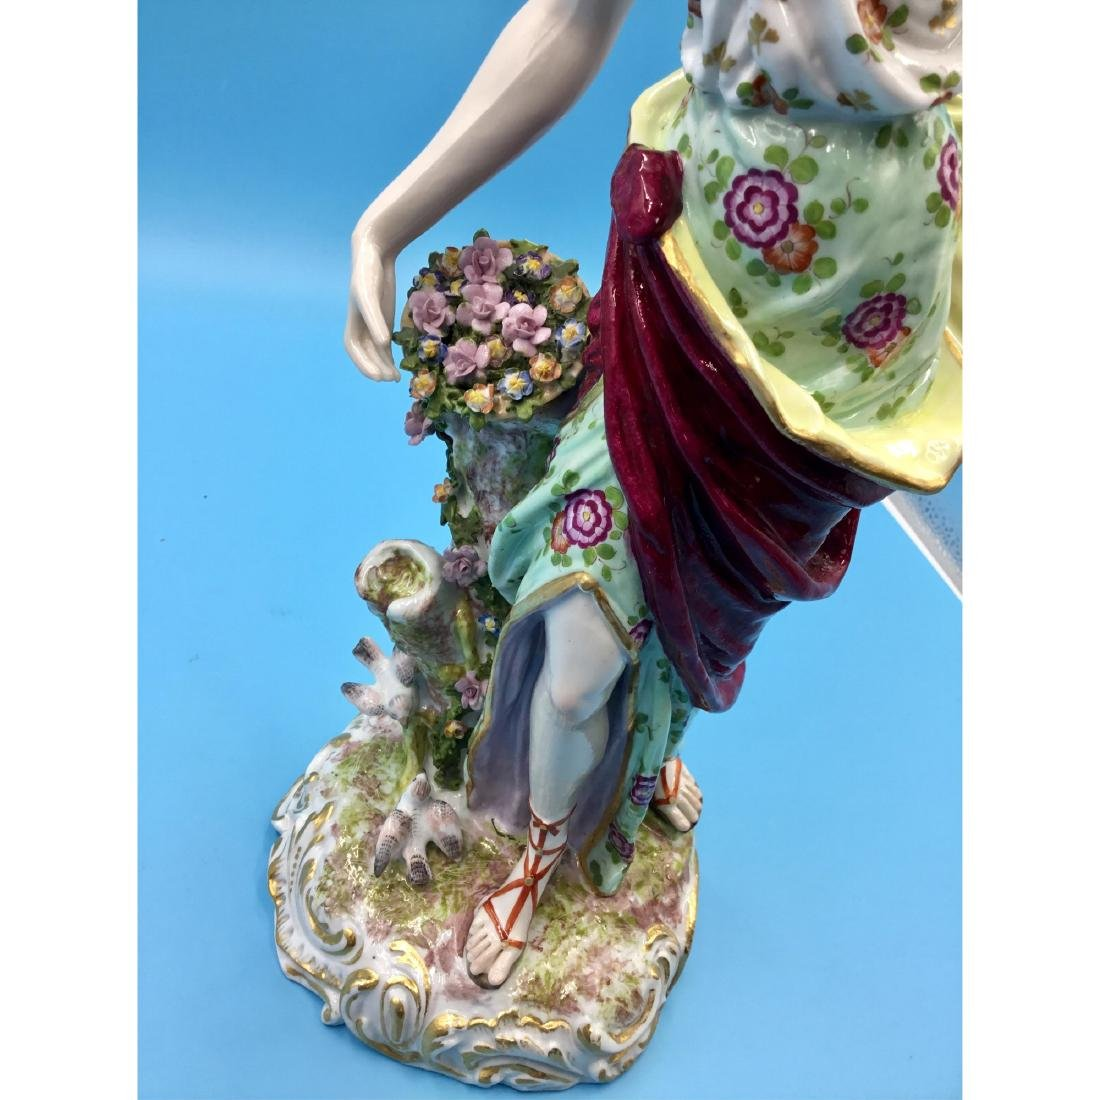 LARGE ARCHILLE BLOCH FRENCH STATUE FIGURINE - 6